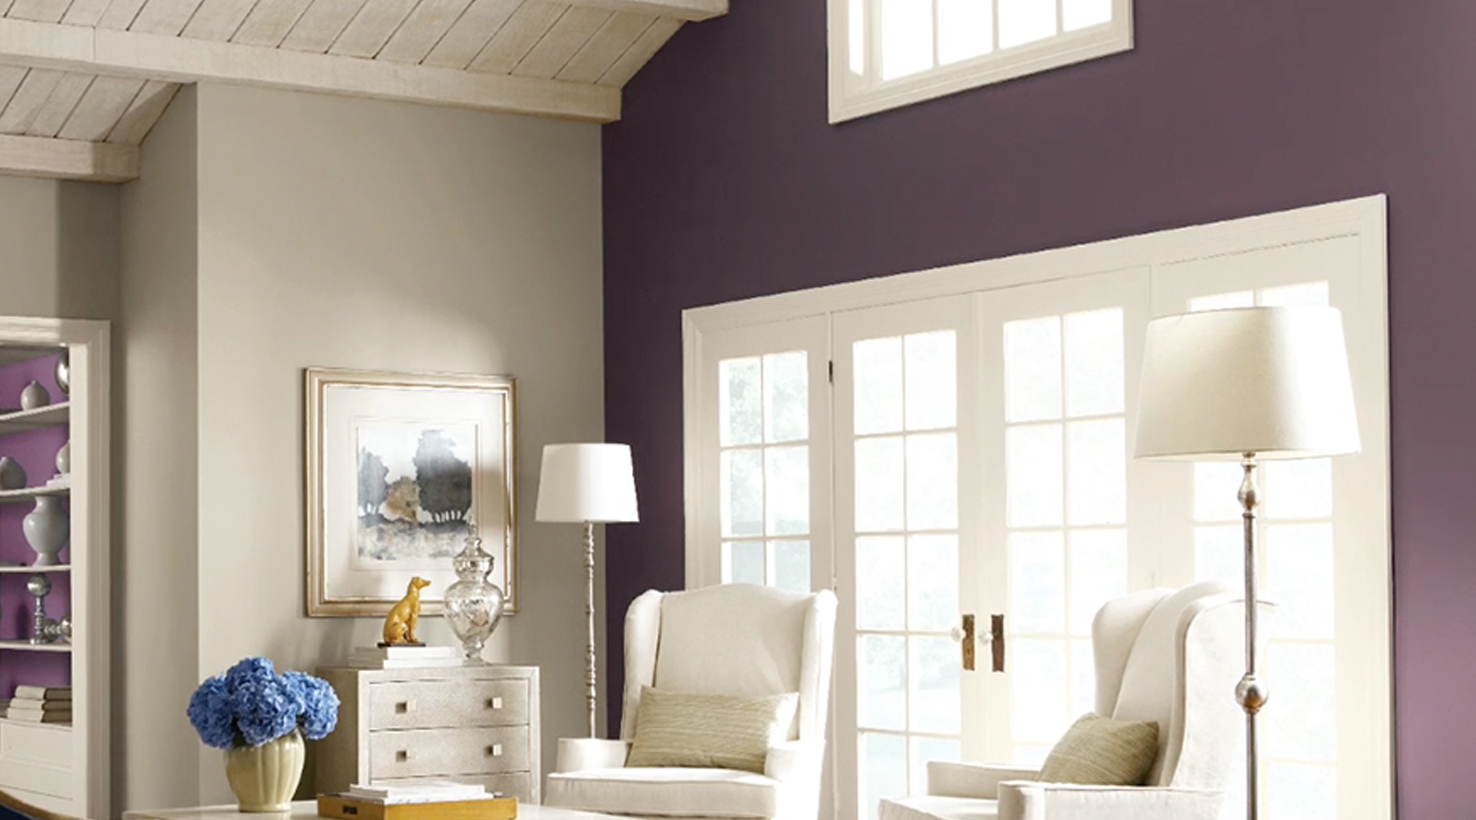 Sherwin williams living room colors for Sherwin williams ceiling paint colors